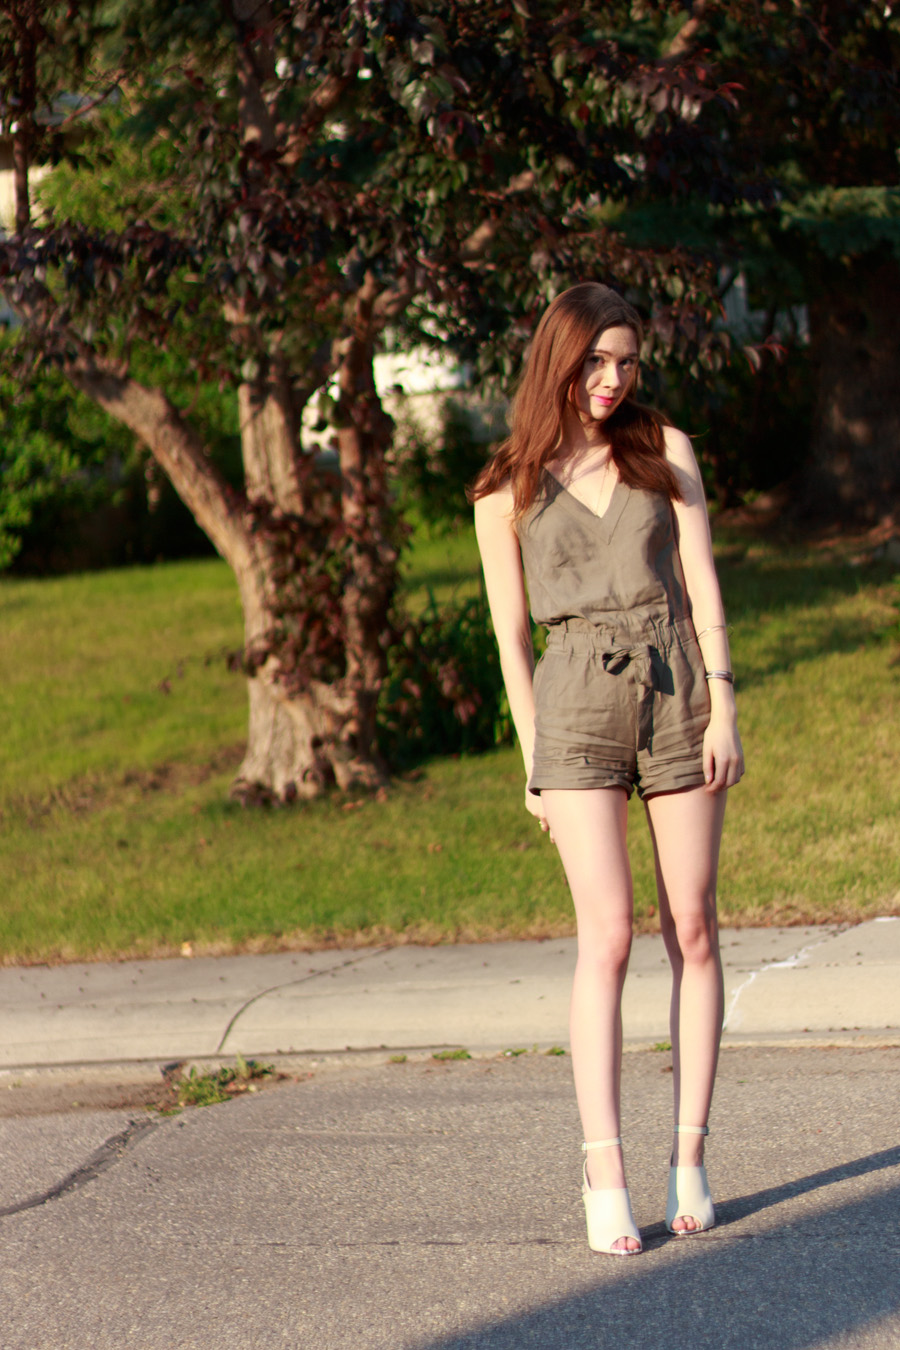 romper, jumper, khaki clothing, almost military style, summer fashion, stampede outfit, banana republic marissa webb design, design lab lord and taylor, calgary fashion